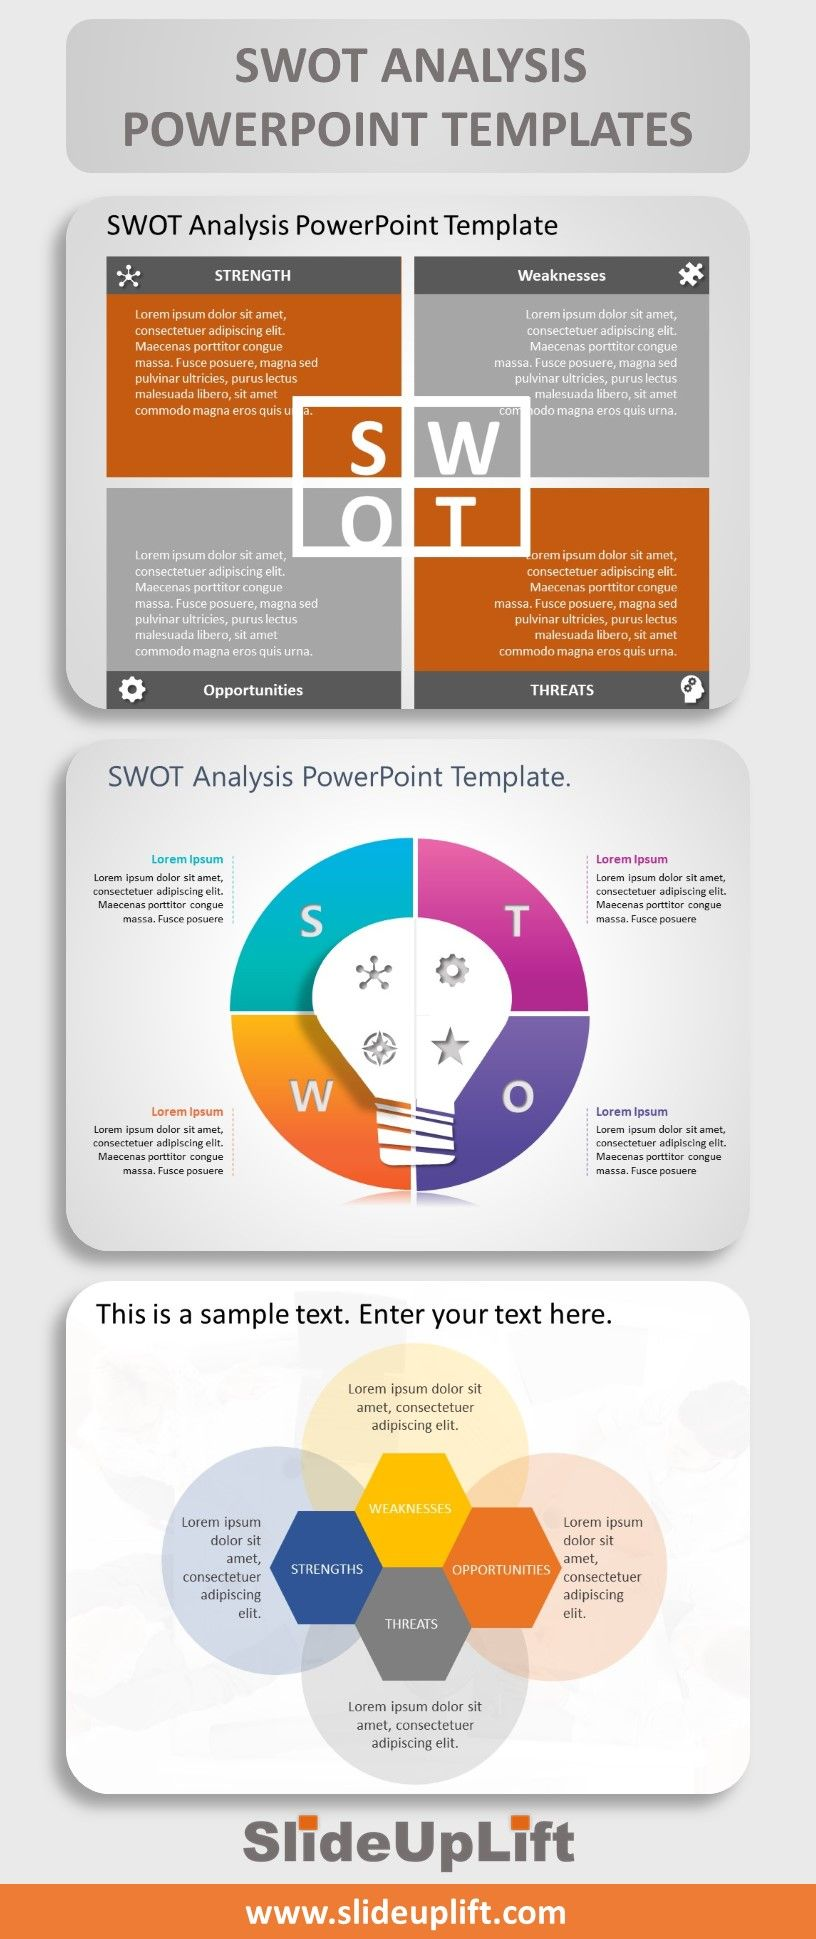 SWOT Analysis Powerpoint Templates in 2020 Swot analysis